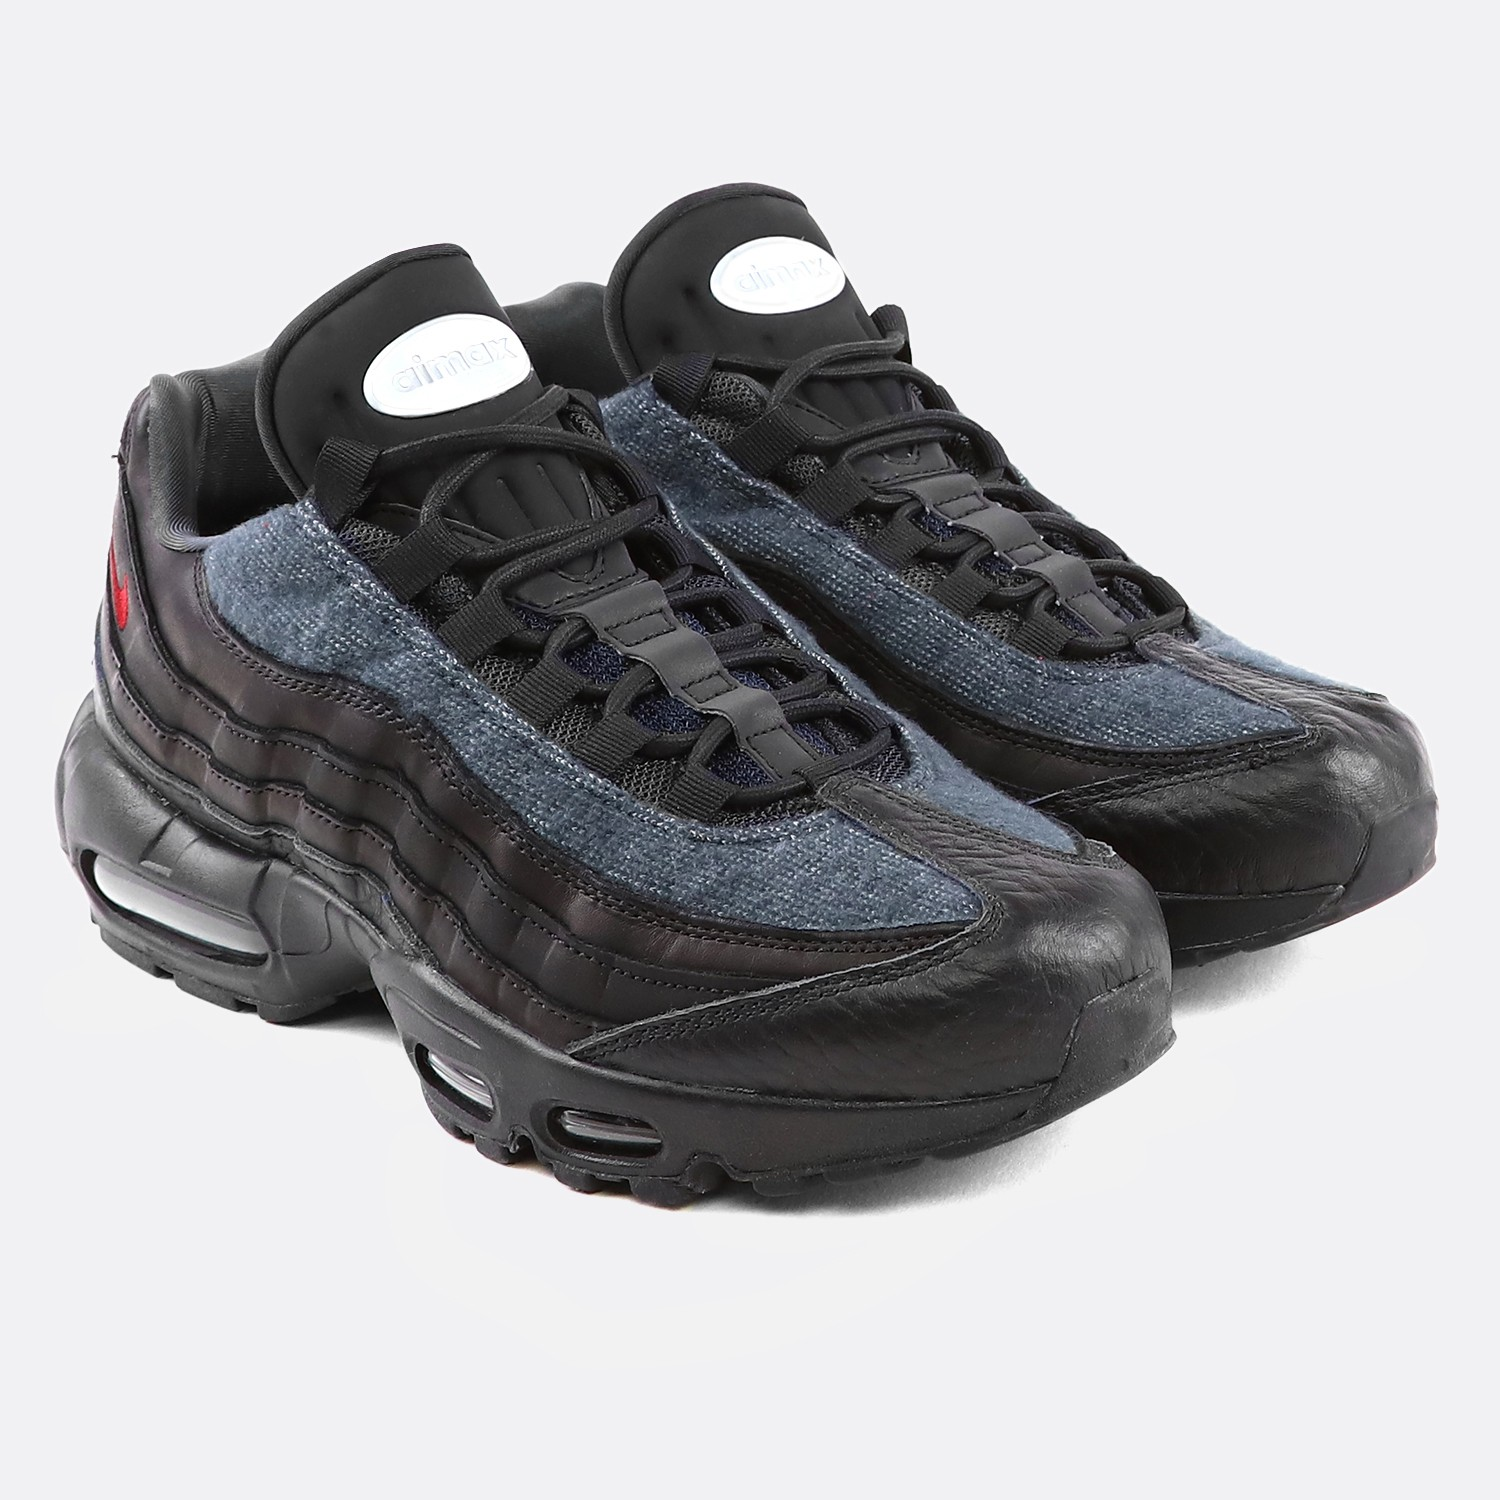 buy online ffd21 1f837 AIR MAX 95 NRG BLACK   TEAM RED   ANTHRACITE